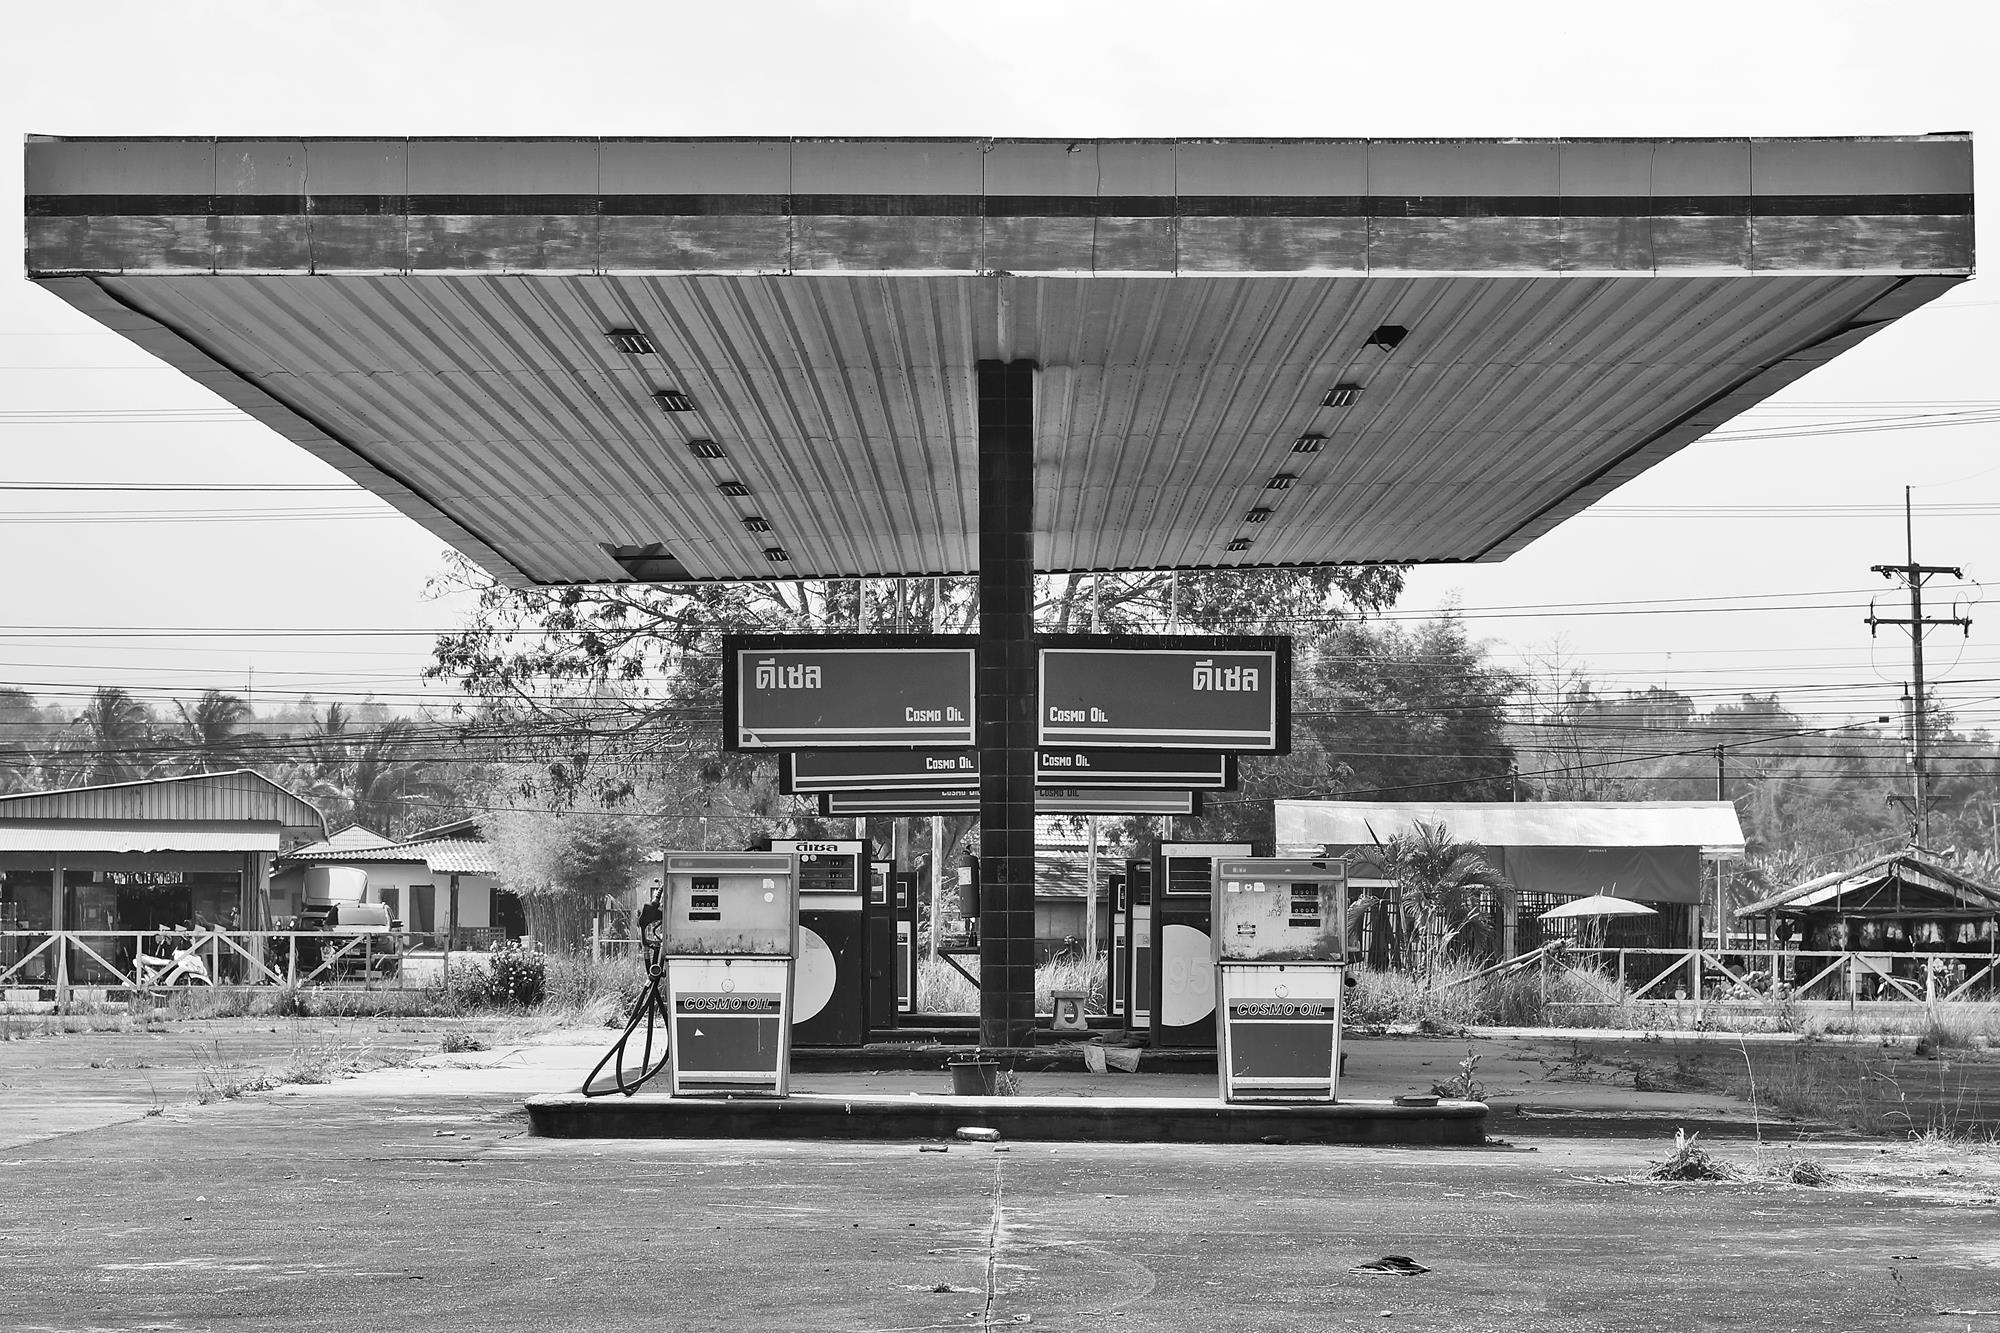 chiang mai old gas station